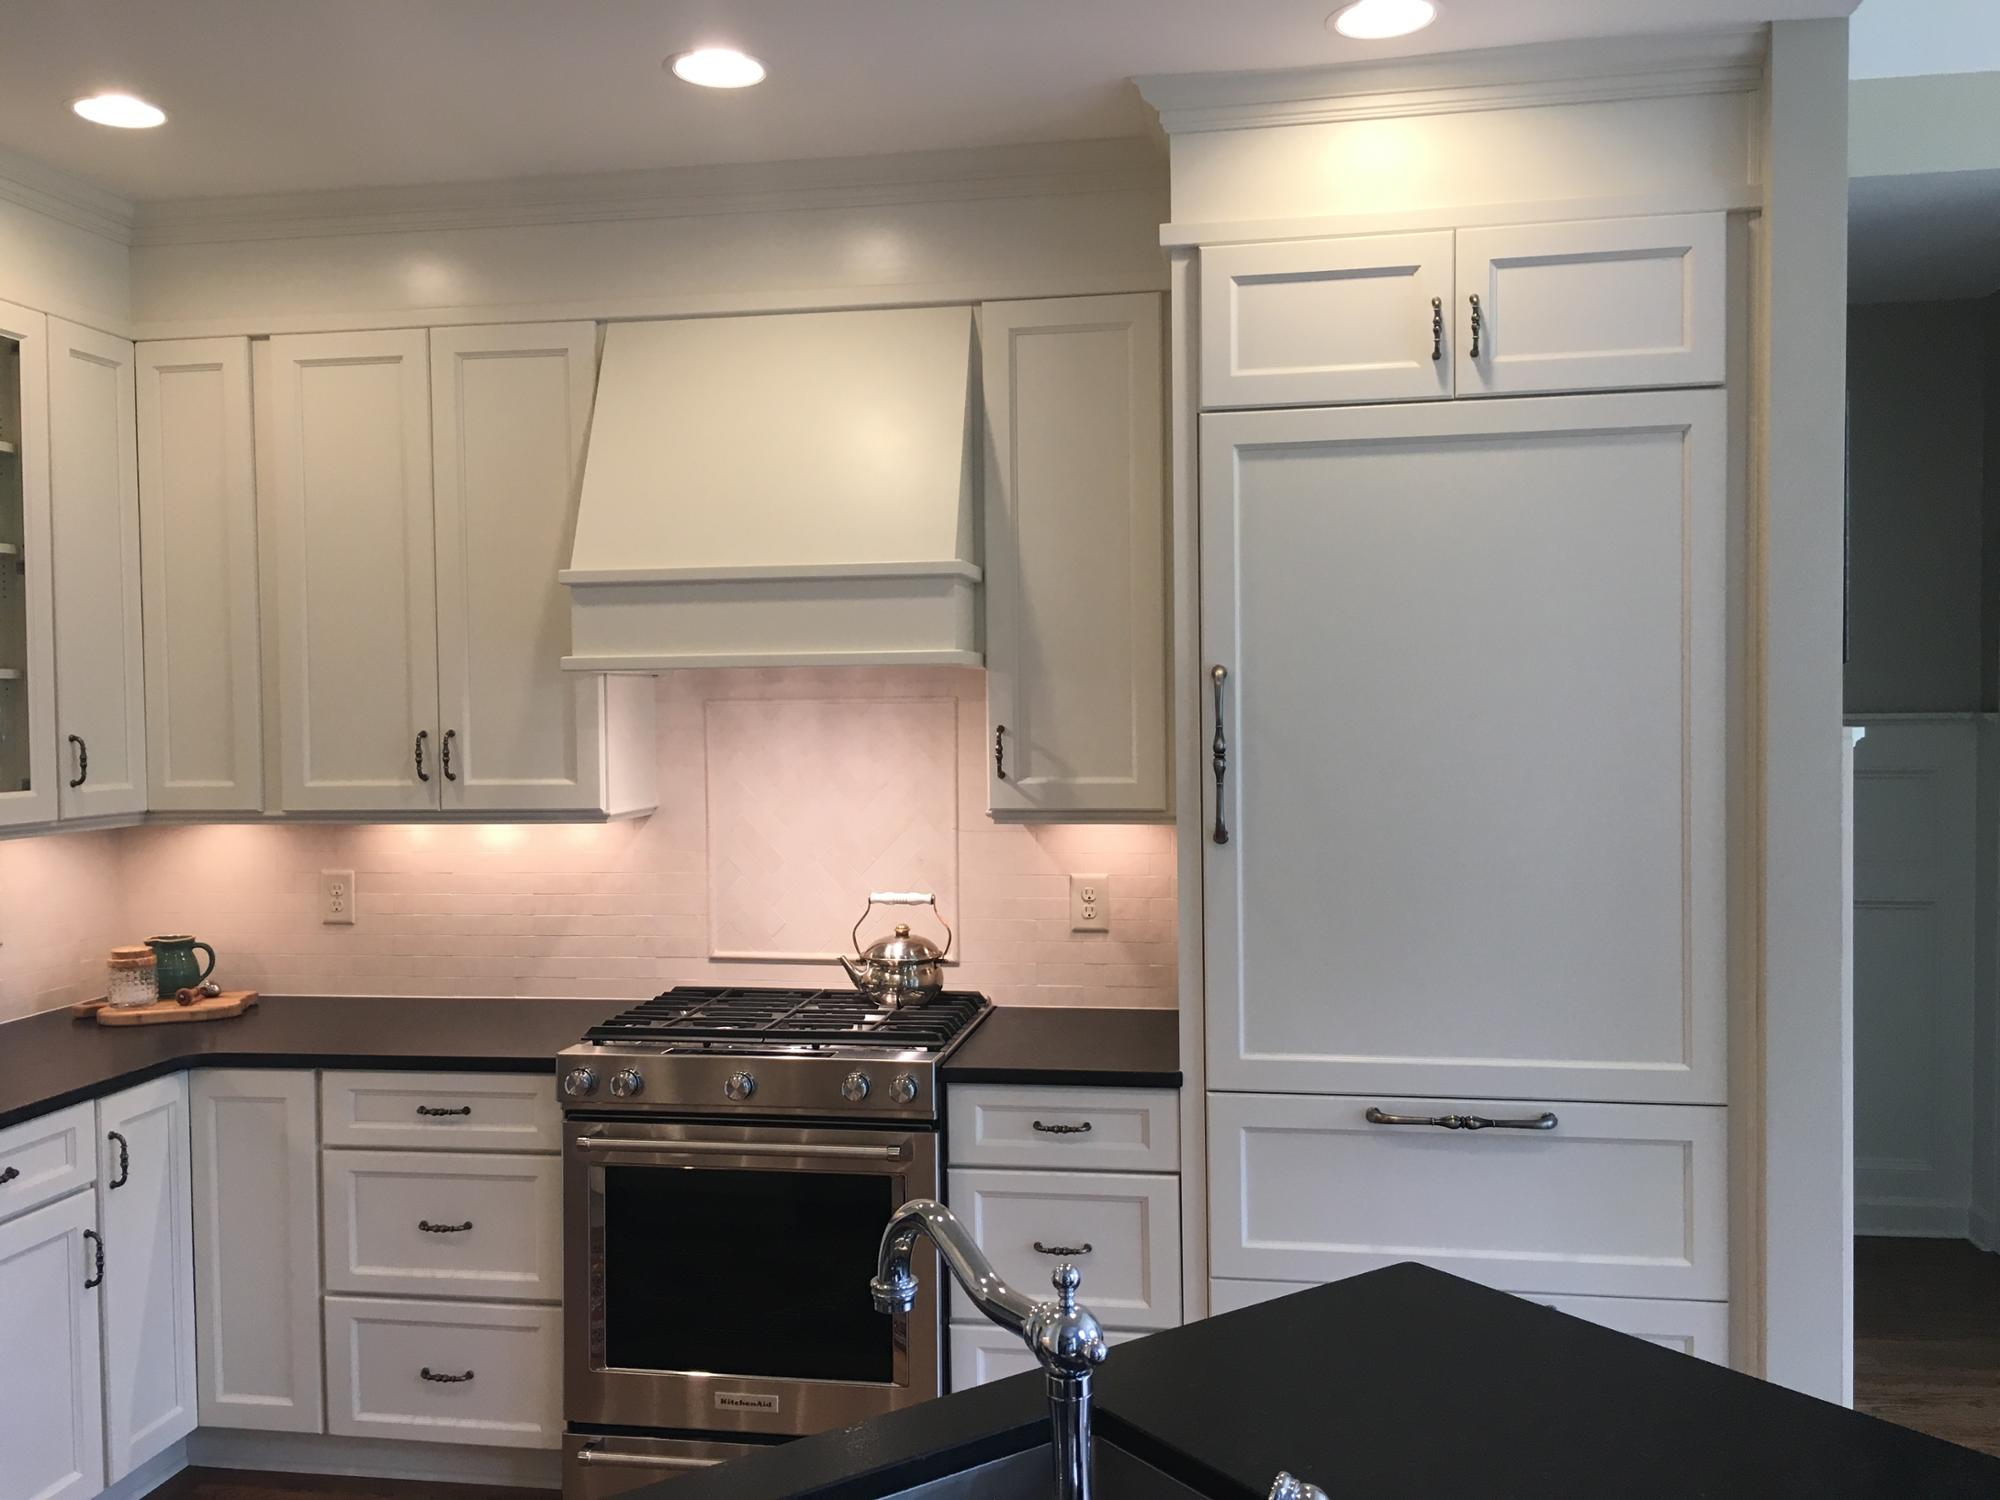 Reface Kitchen Used Kitchen Cabinets Craigslist For Home ...